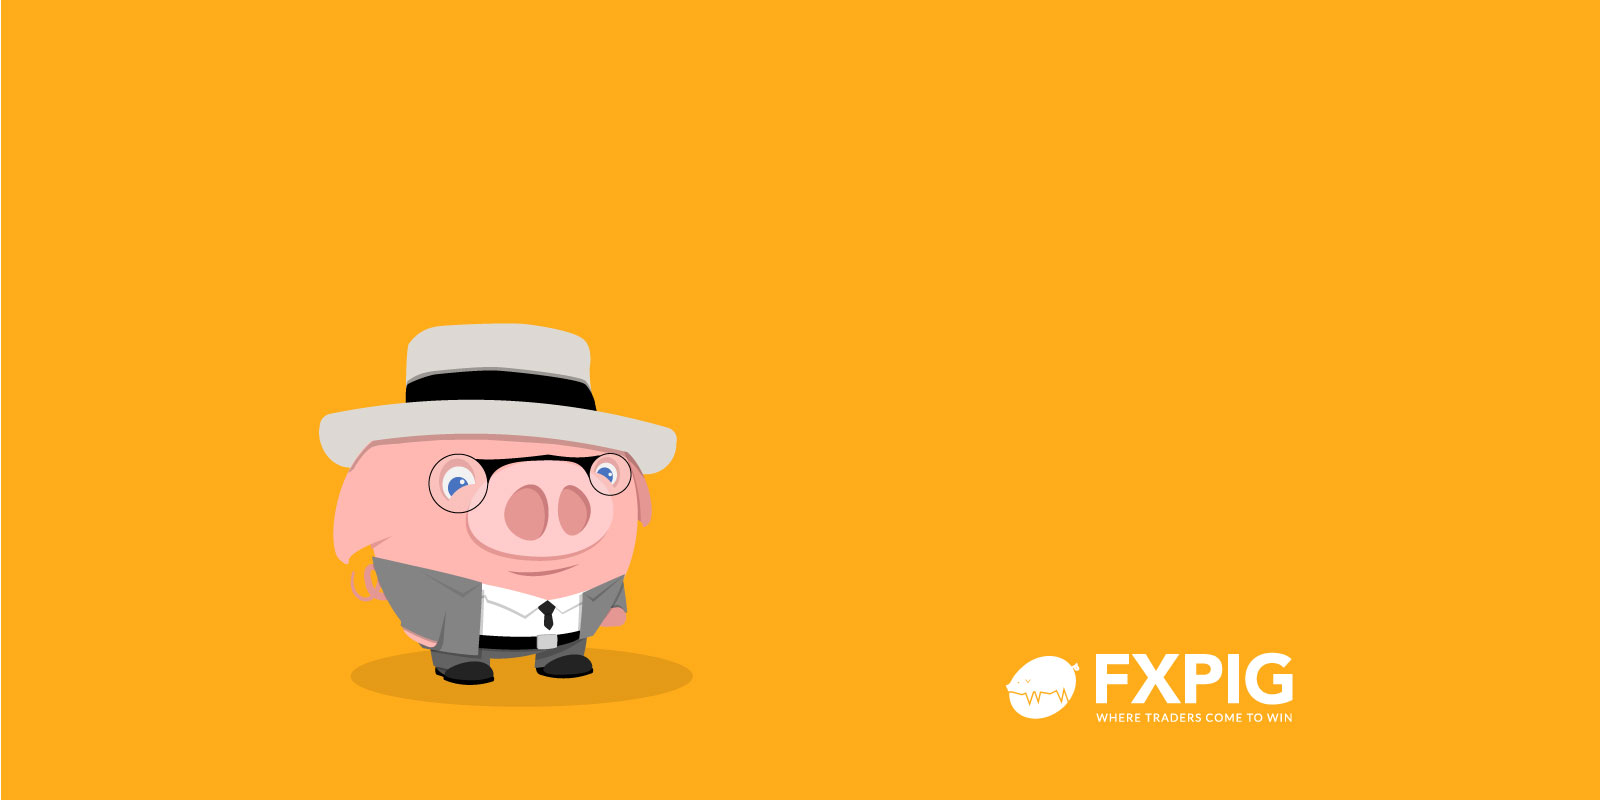 FX-Trading-Wisdom_selling_FXPIG_Jesse-Livermore